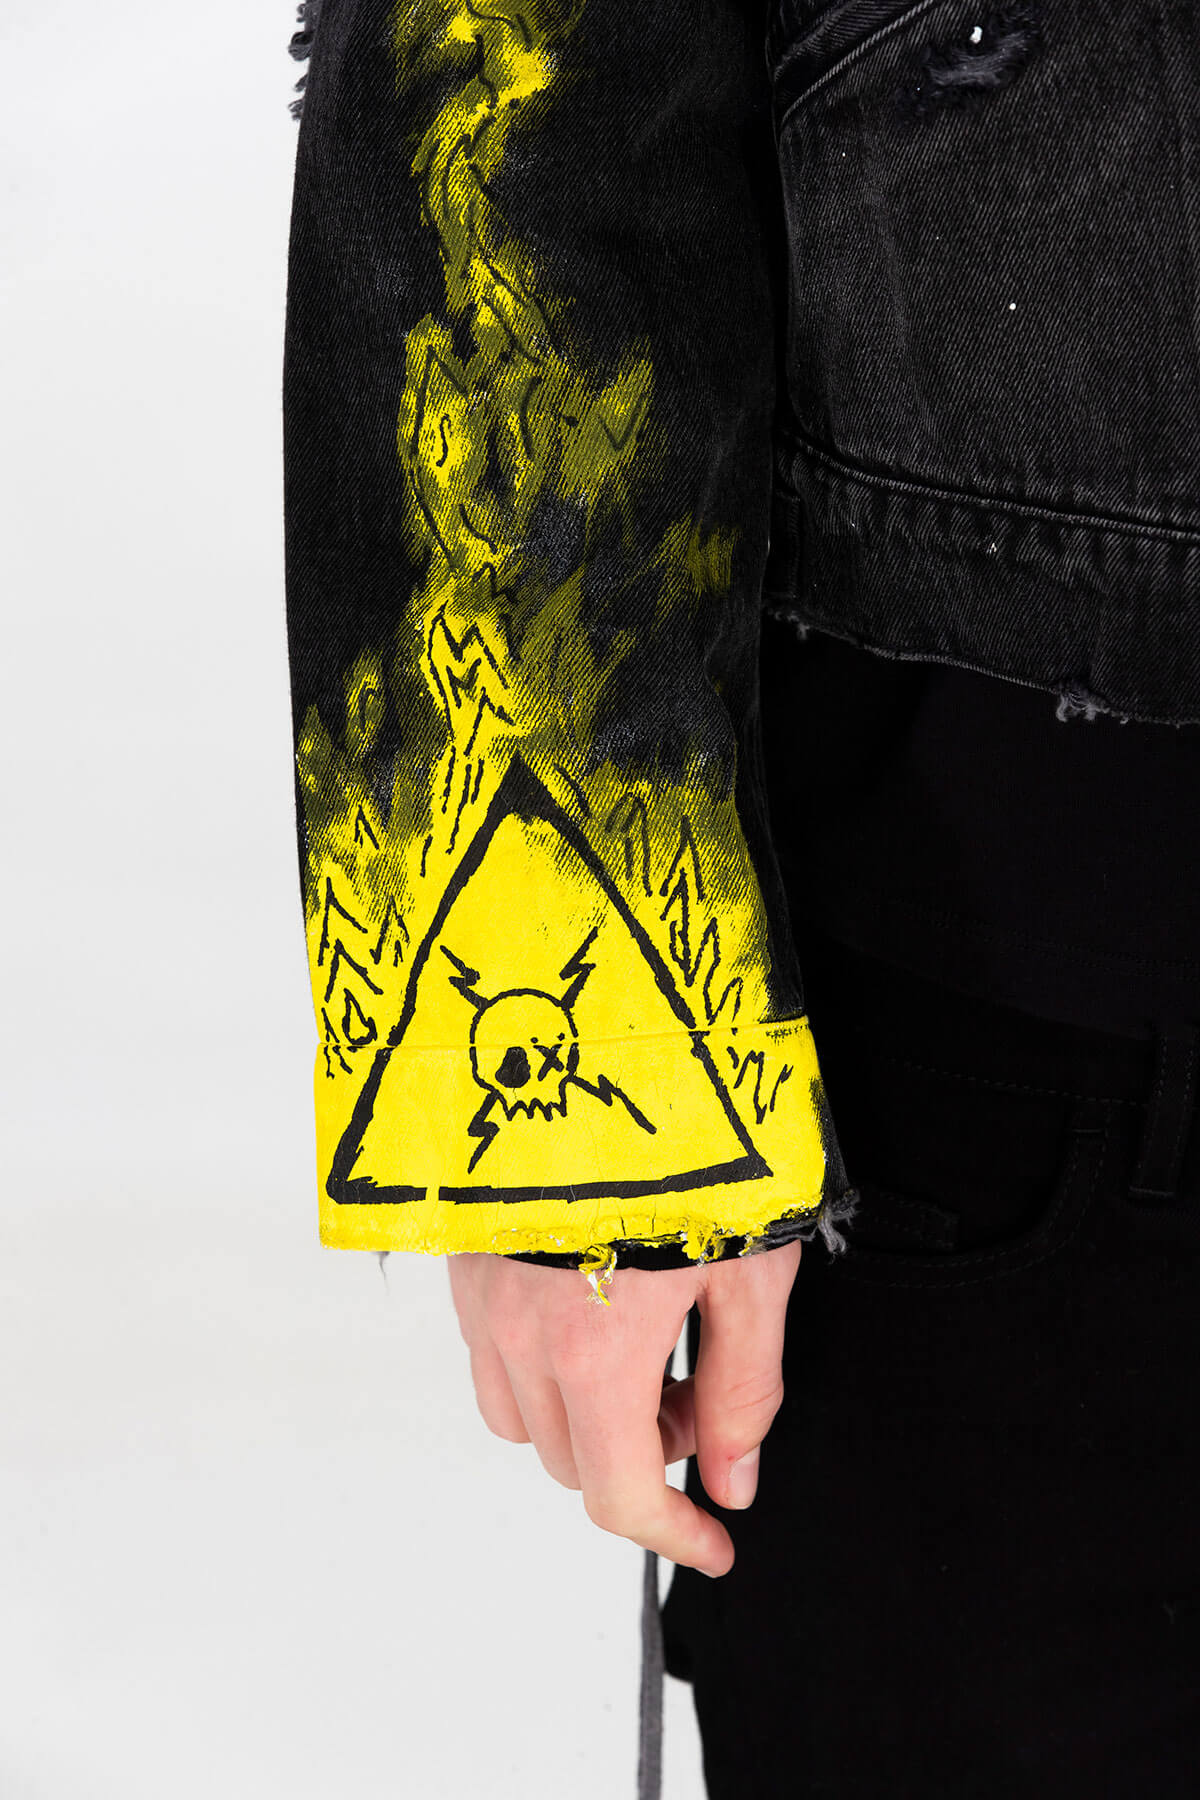 NEON PAX DENIM JACKET - HAND PAINTED - ARCHIVE JACKET - MJB